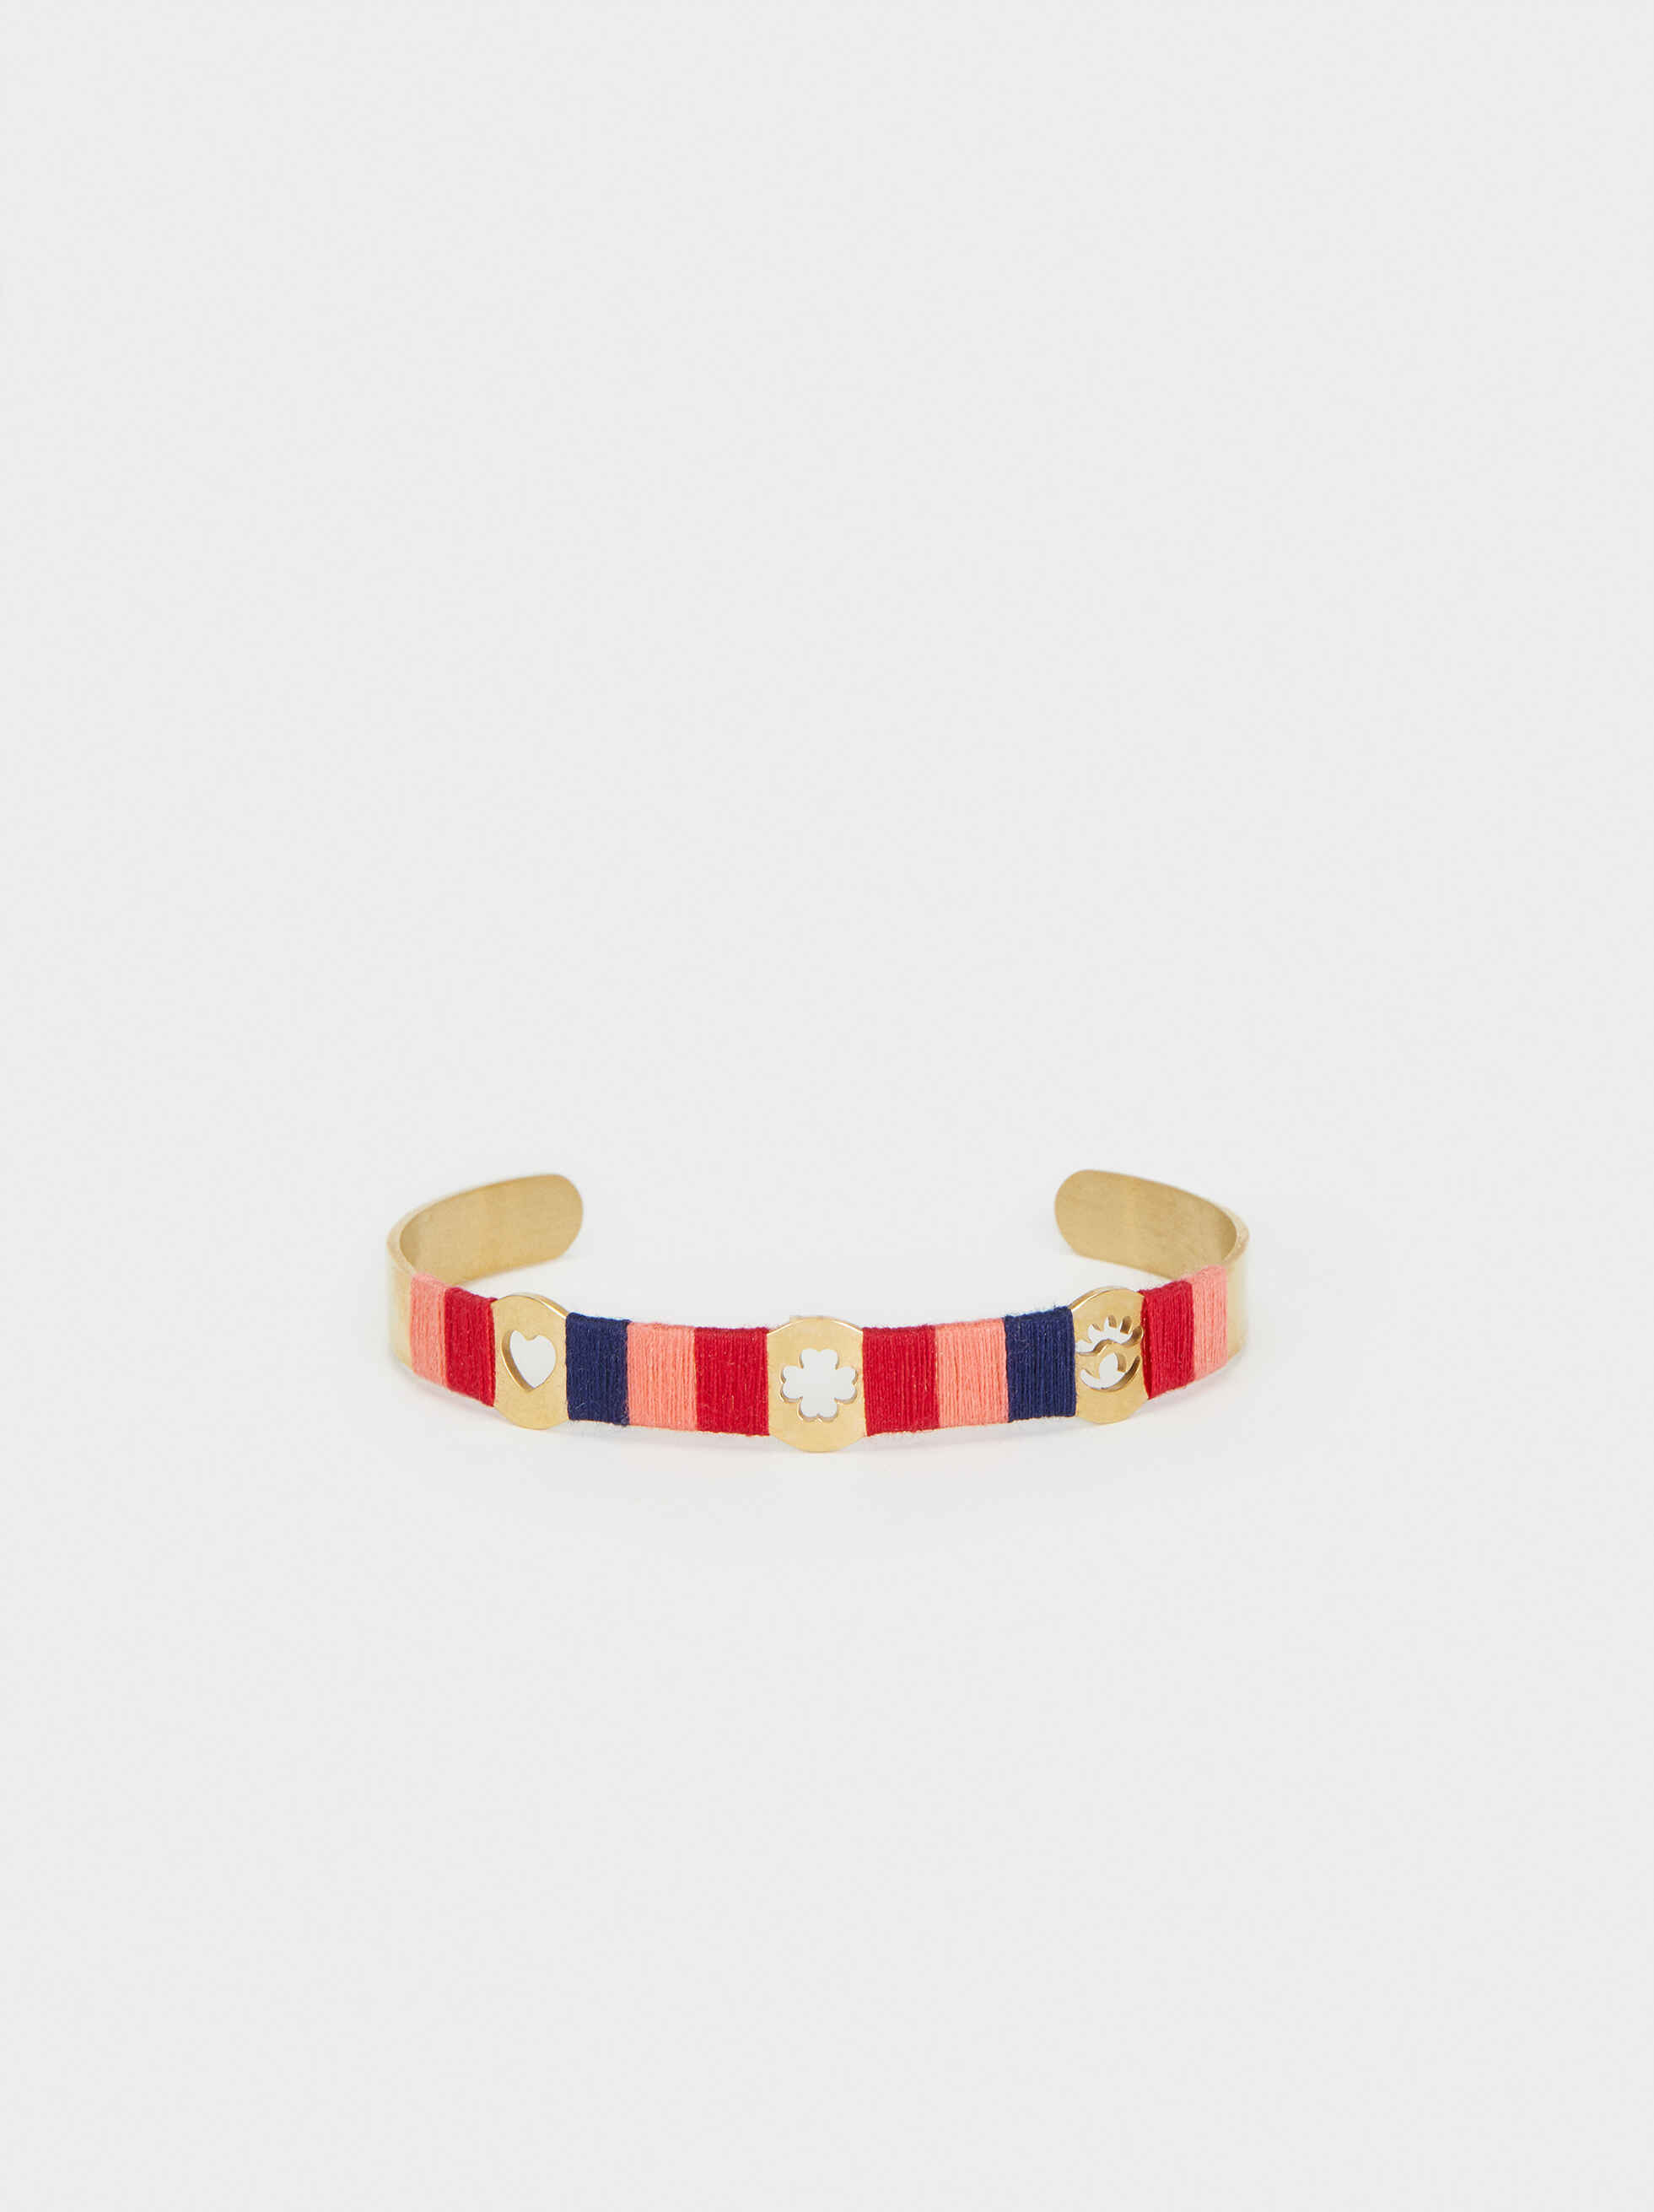 Gold Rigid Bracelet With Thread Detail, Multicolor, hi-res